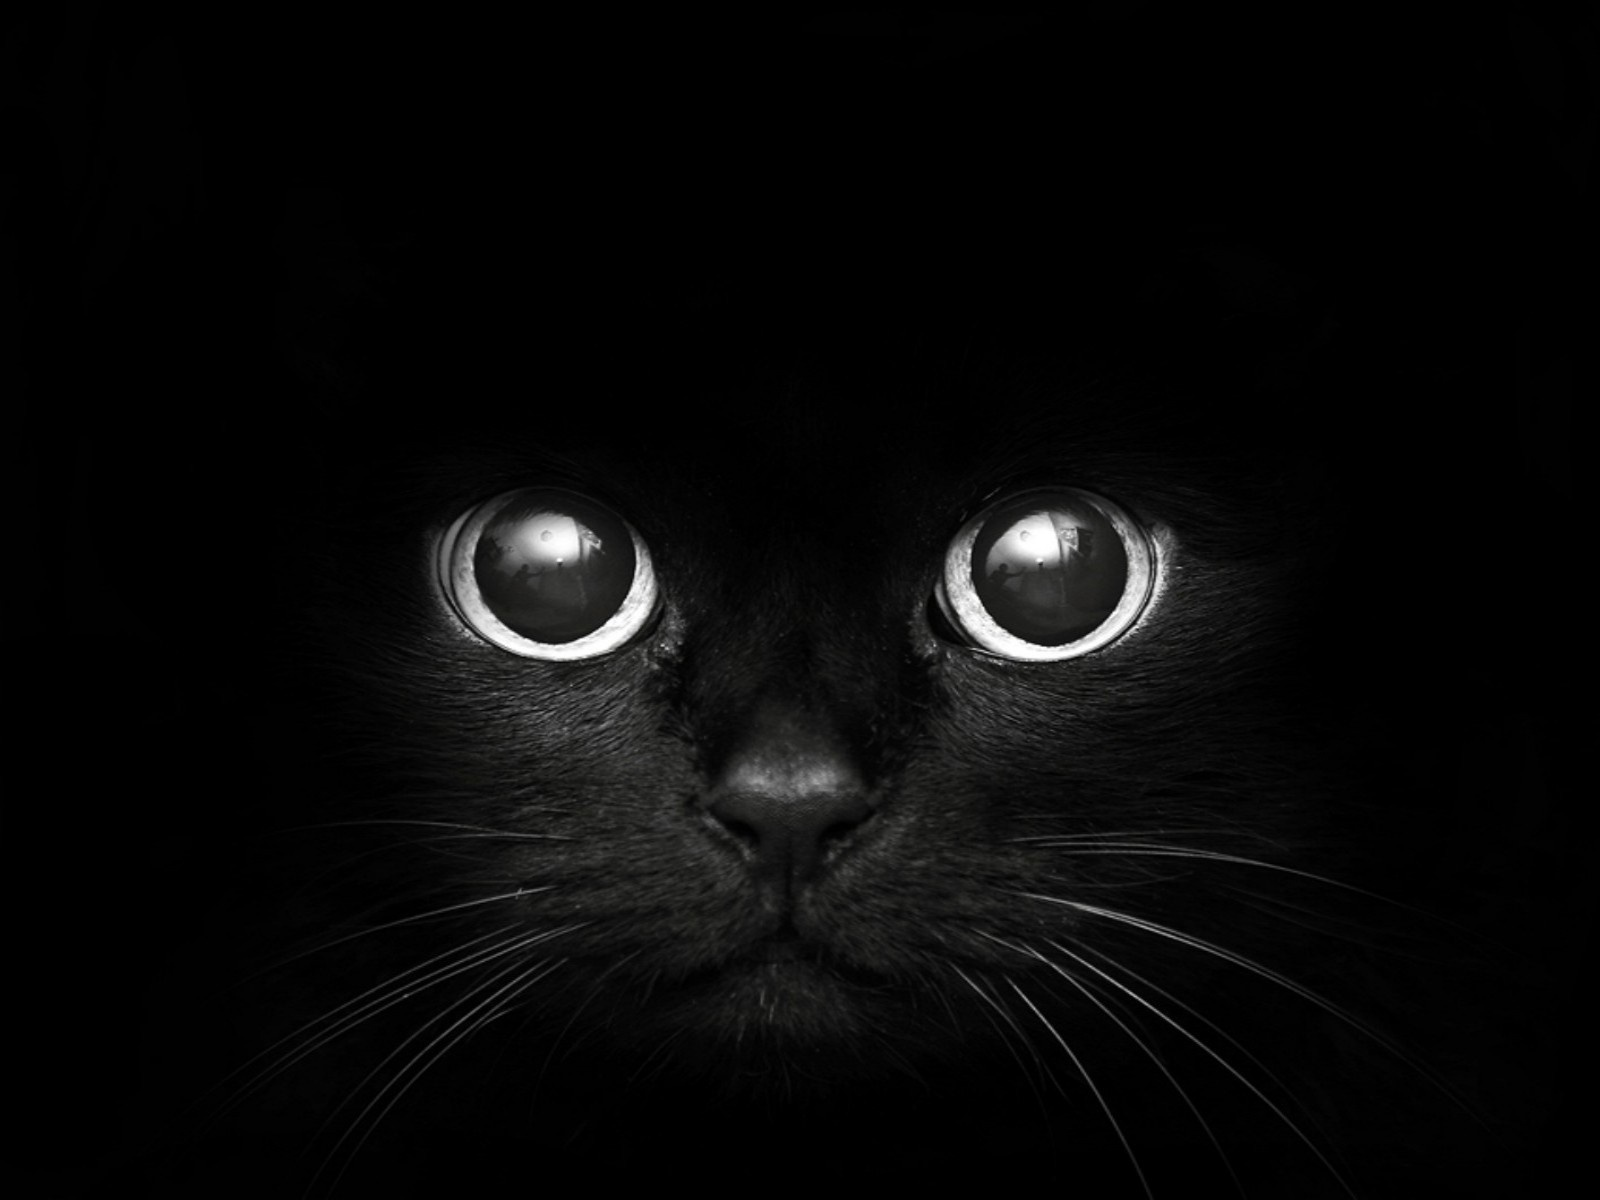 Peticular Fashions: Black cats at Halloween. Are they really in ...